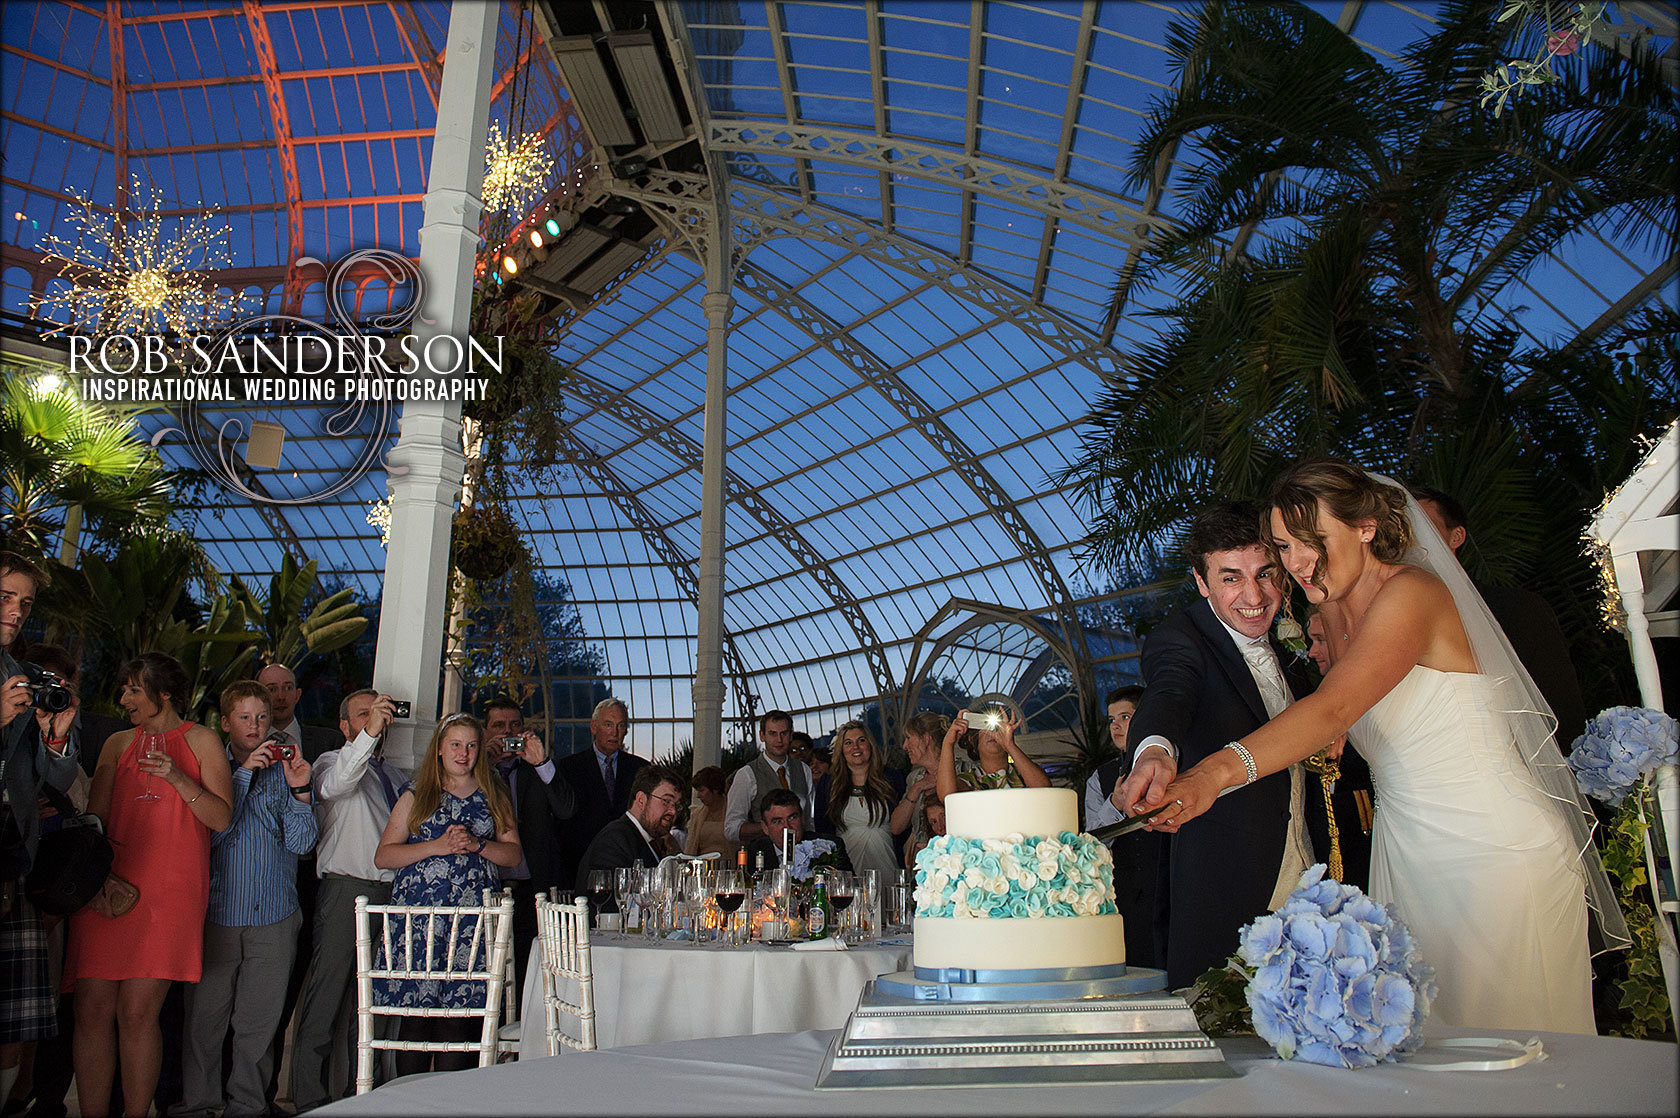 cutting the cake with spectacular view of the Palm House at night in the background